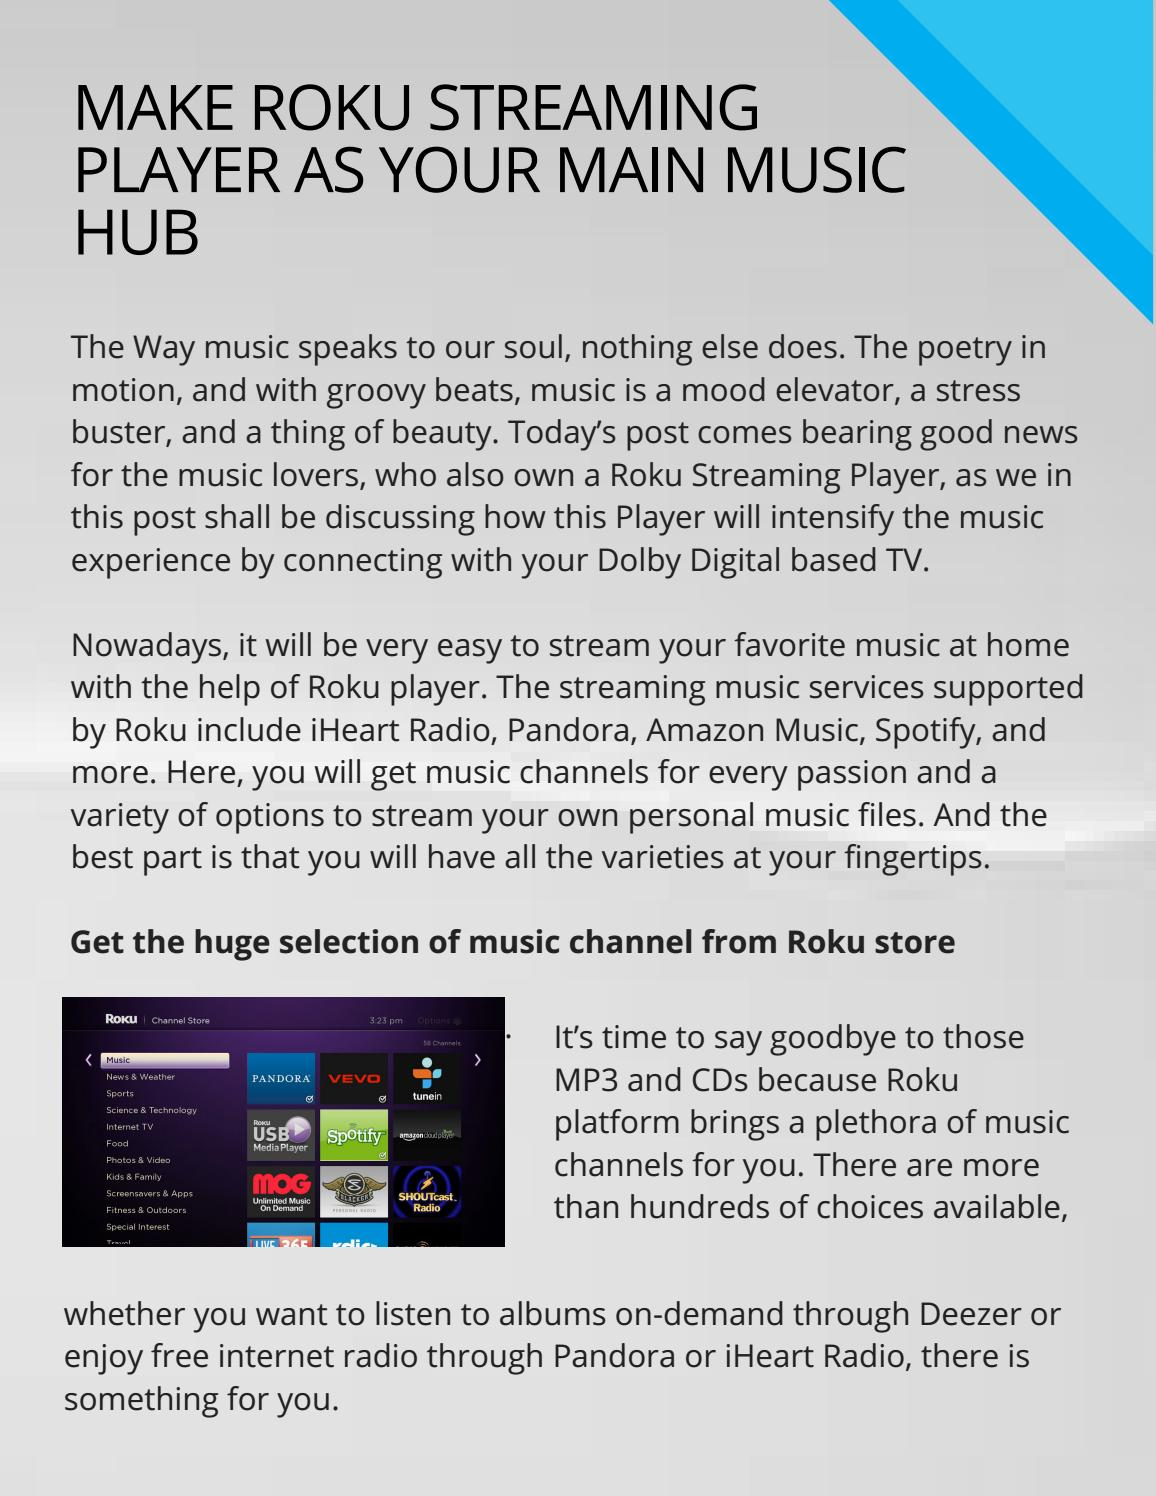 Make Roku Streaming Player as Your Main Music Hub by